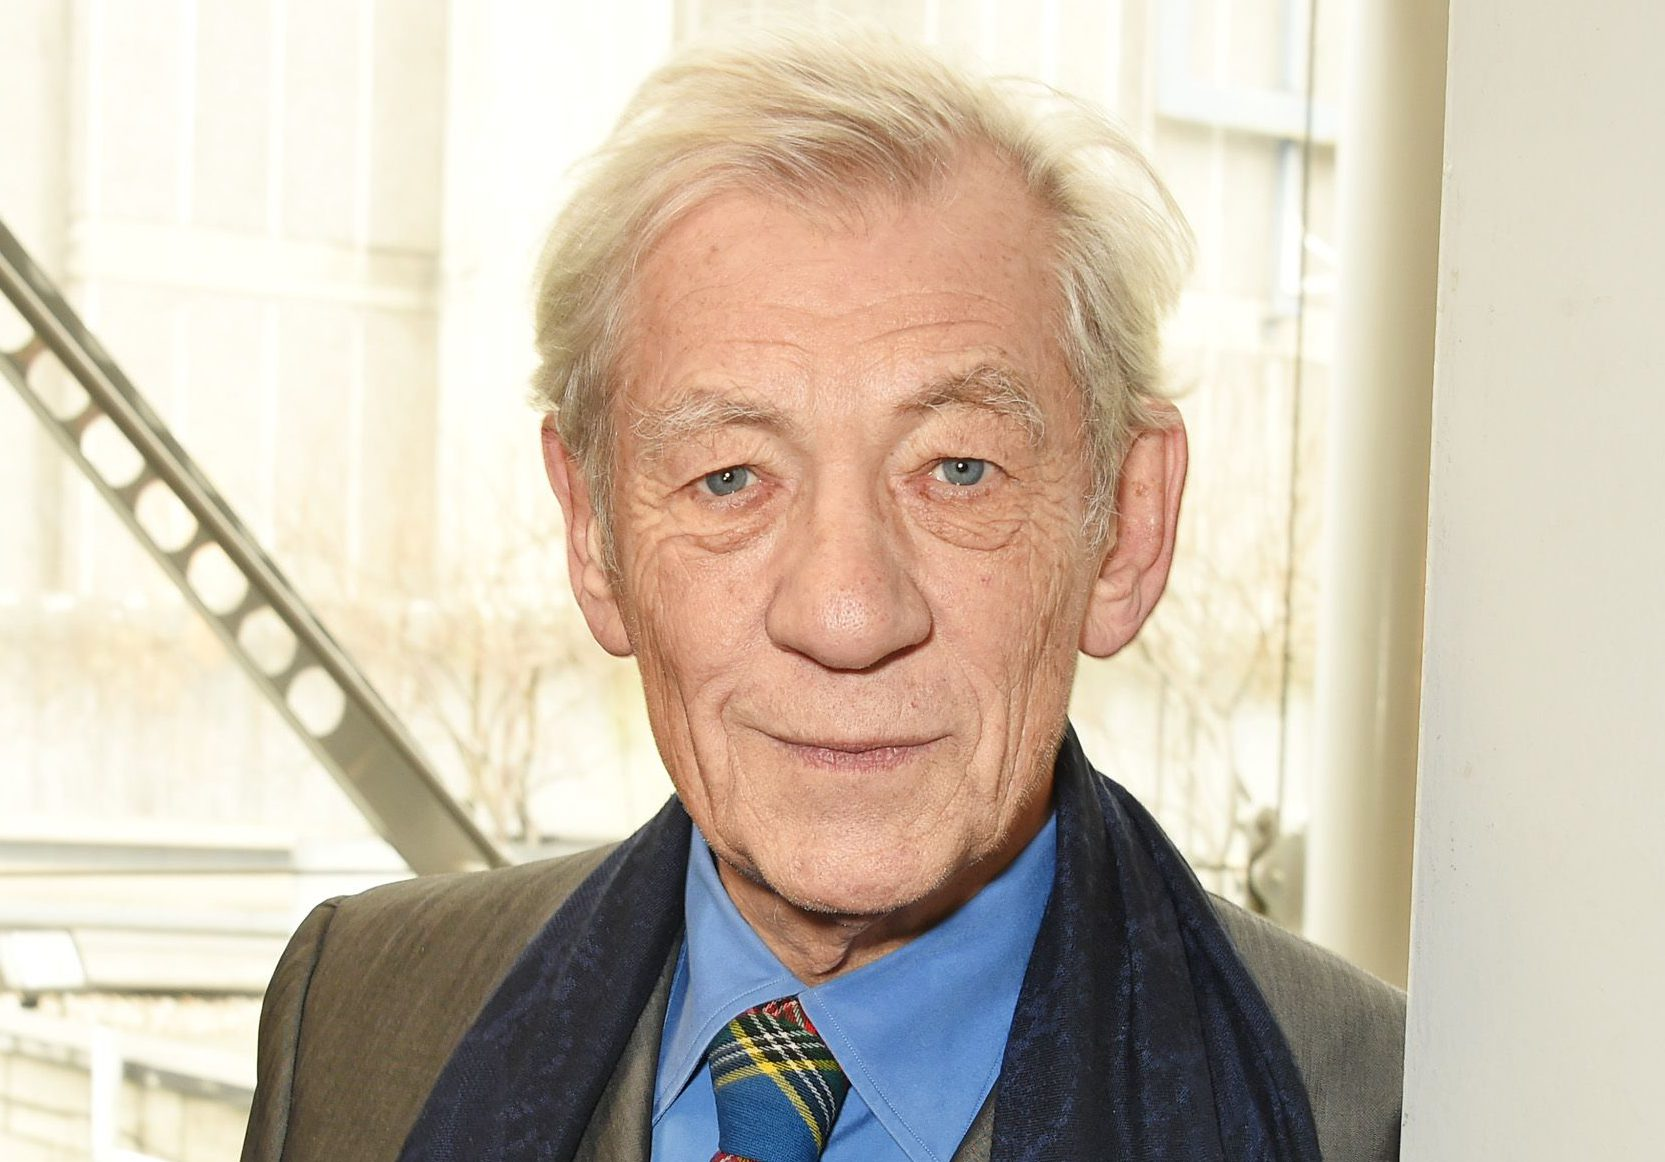 Sir Ian McKellen says he is 'too selfish' to be a father after appearing on Who Do You Think You Are?